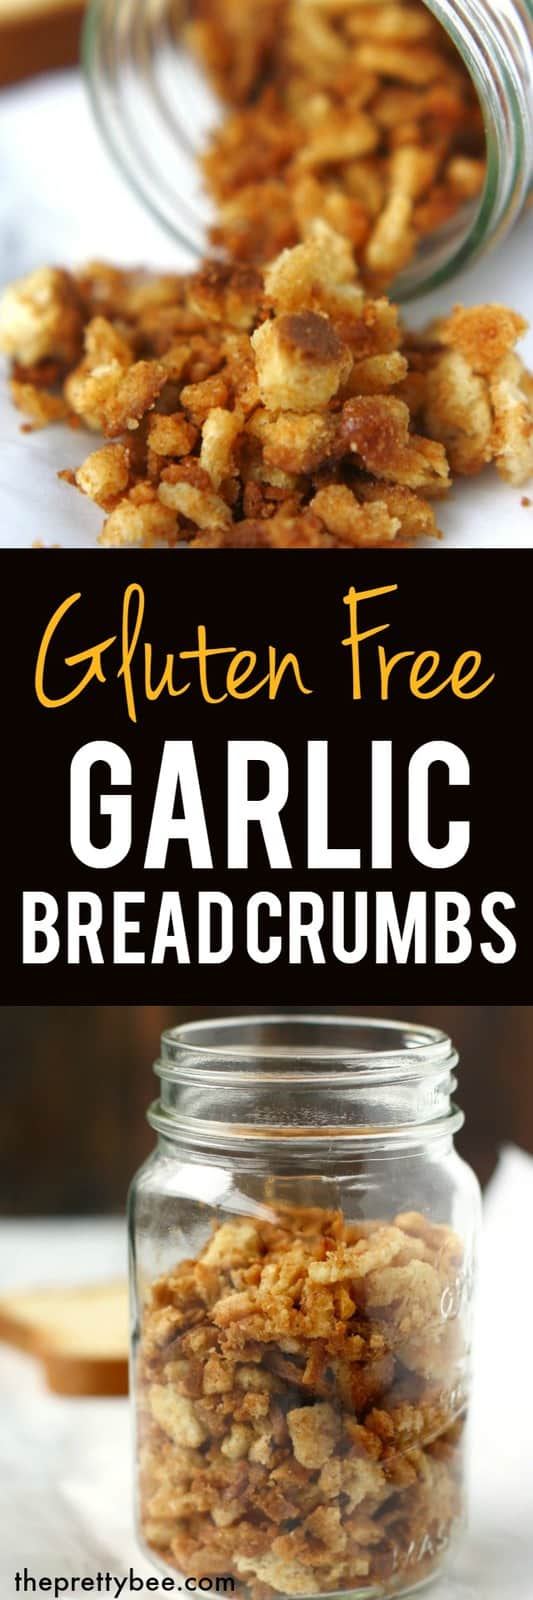 It's easy to make these gluten free bread crumbs at home. These are buttery, garlicky, and so delicious. #glutenfree